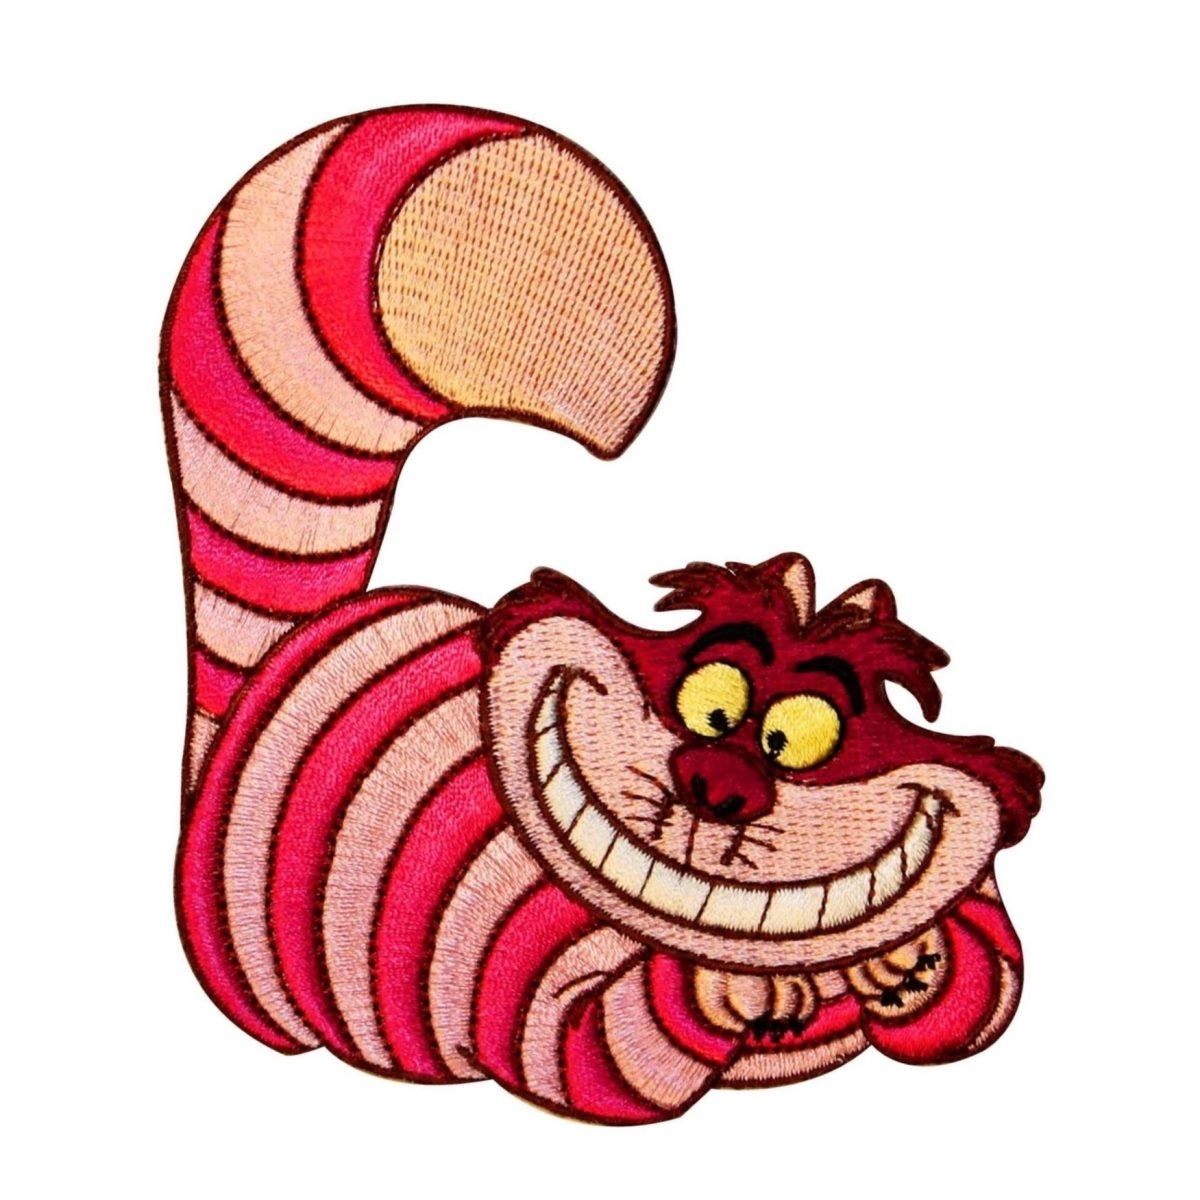 Cheshire Cat Patch Alice In Wonderland Disney Movie Character Iron-On Applique